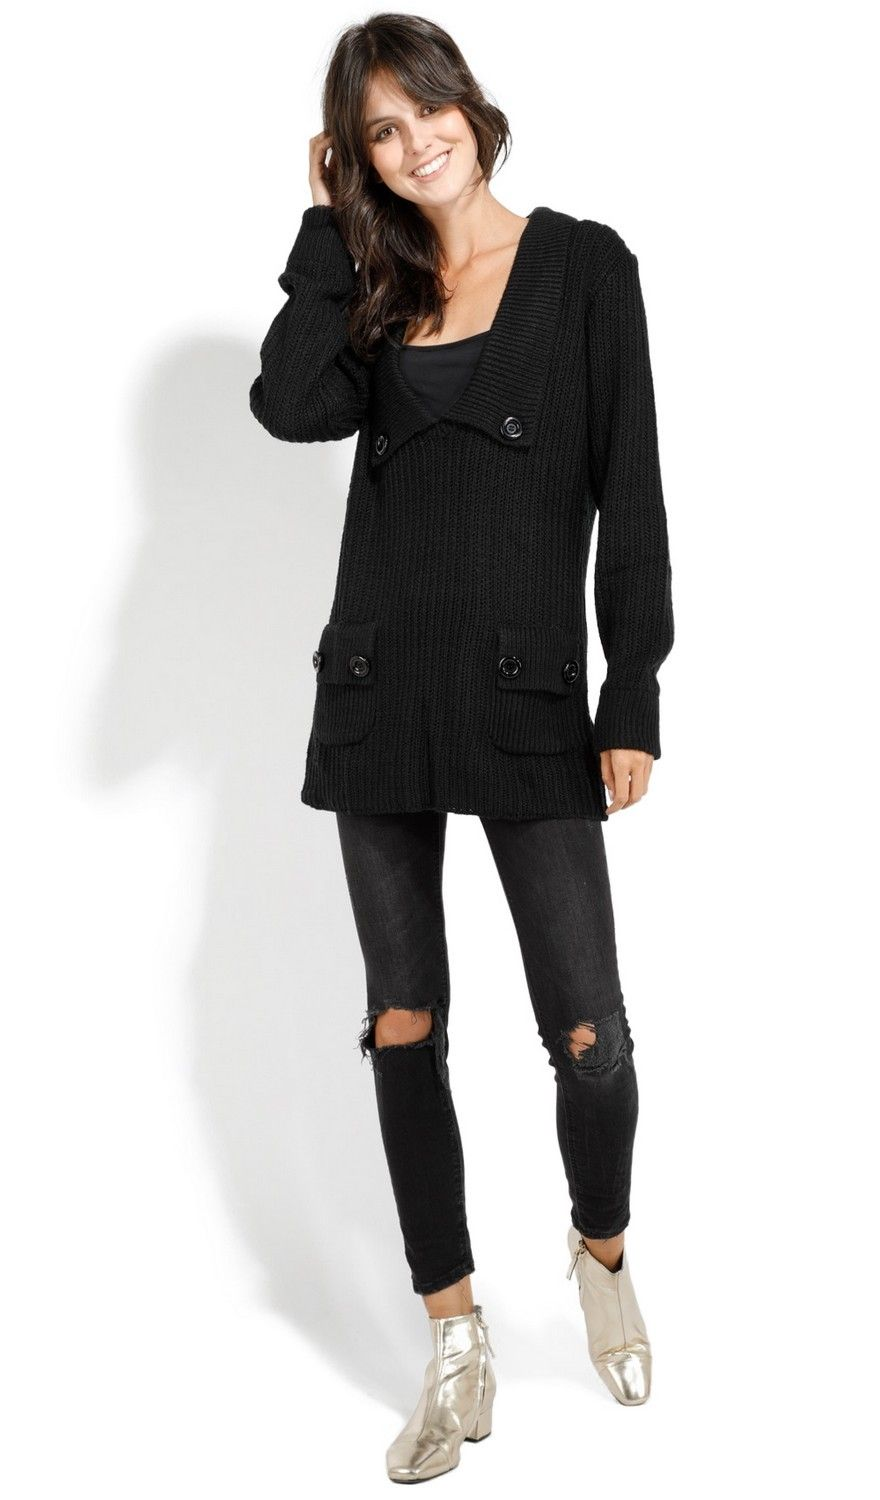 Assuili Buttoned Collar Sweater with Pockets in Black